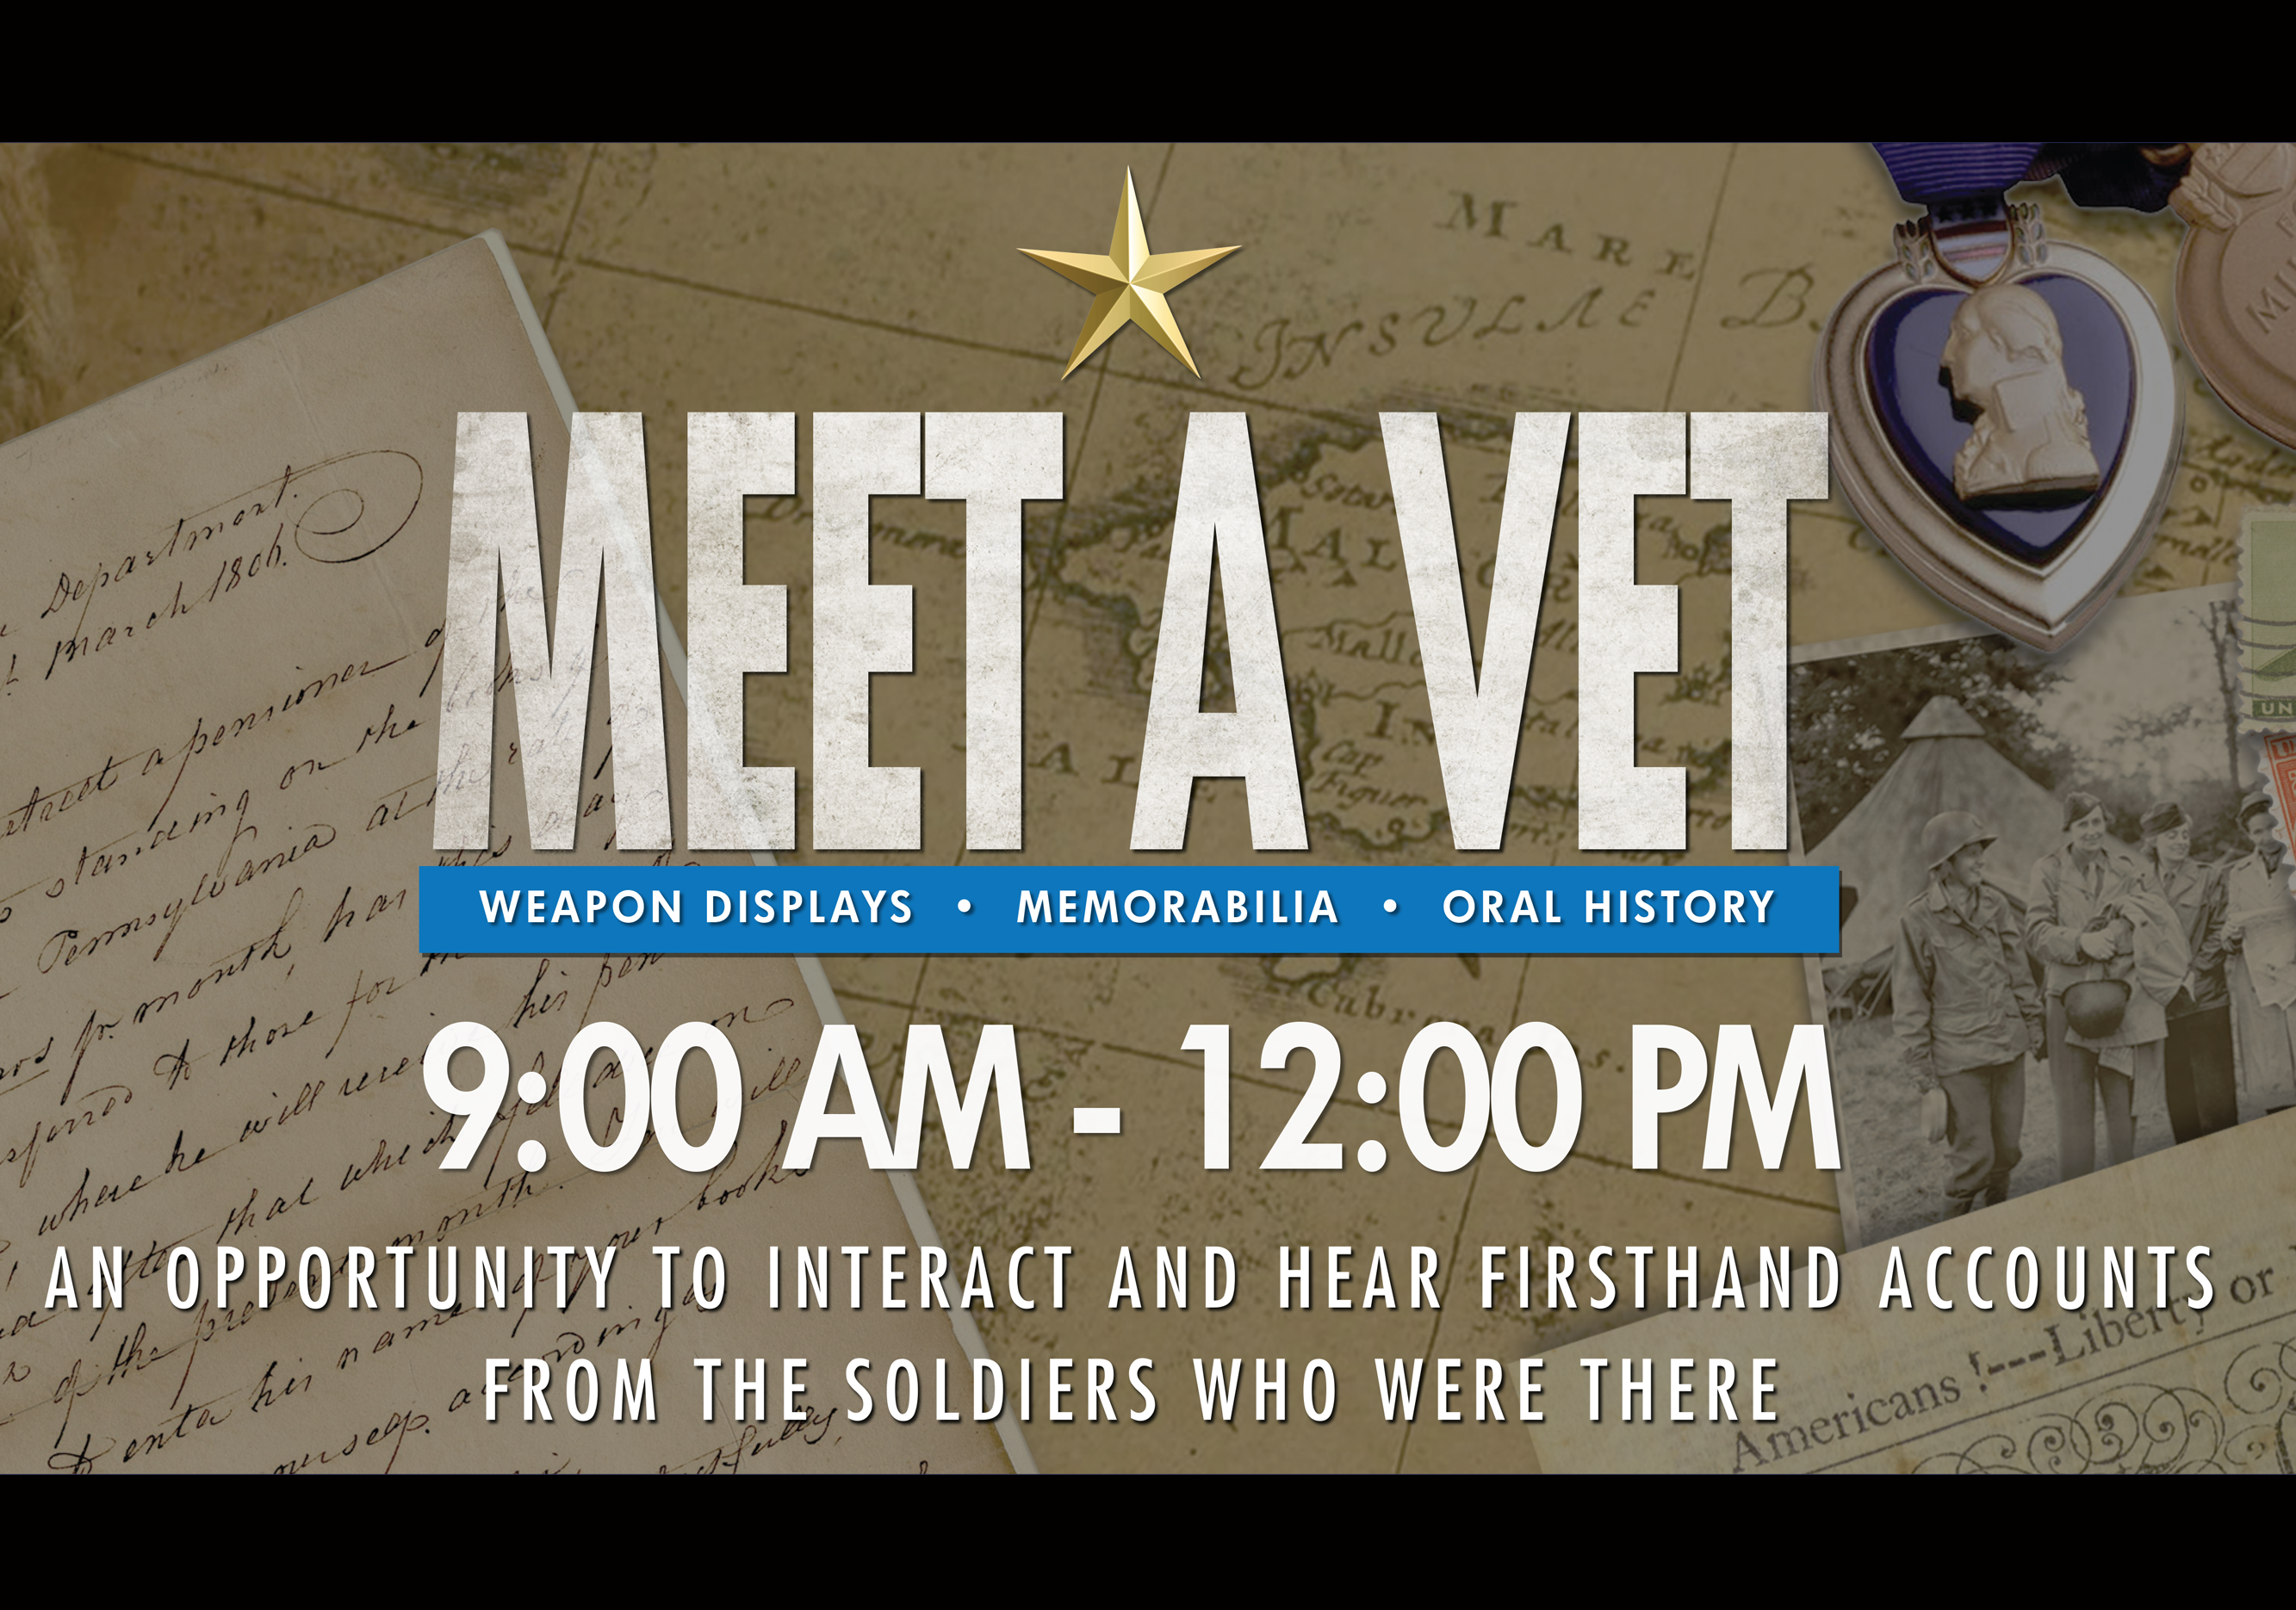 Meet A Vet & Third Saturday Tours!